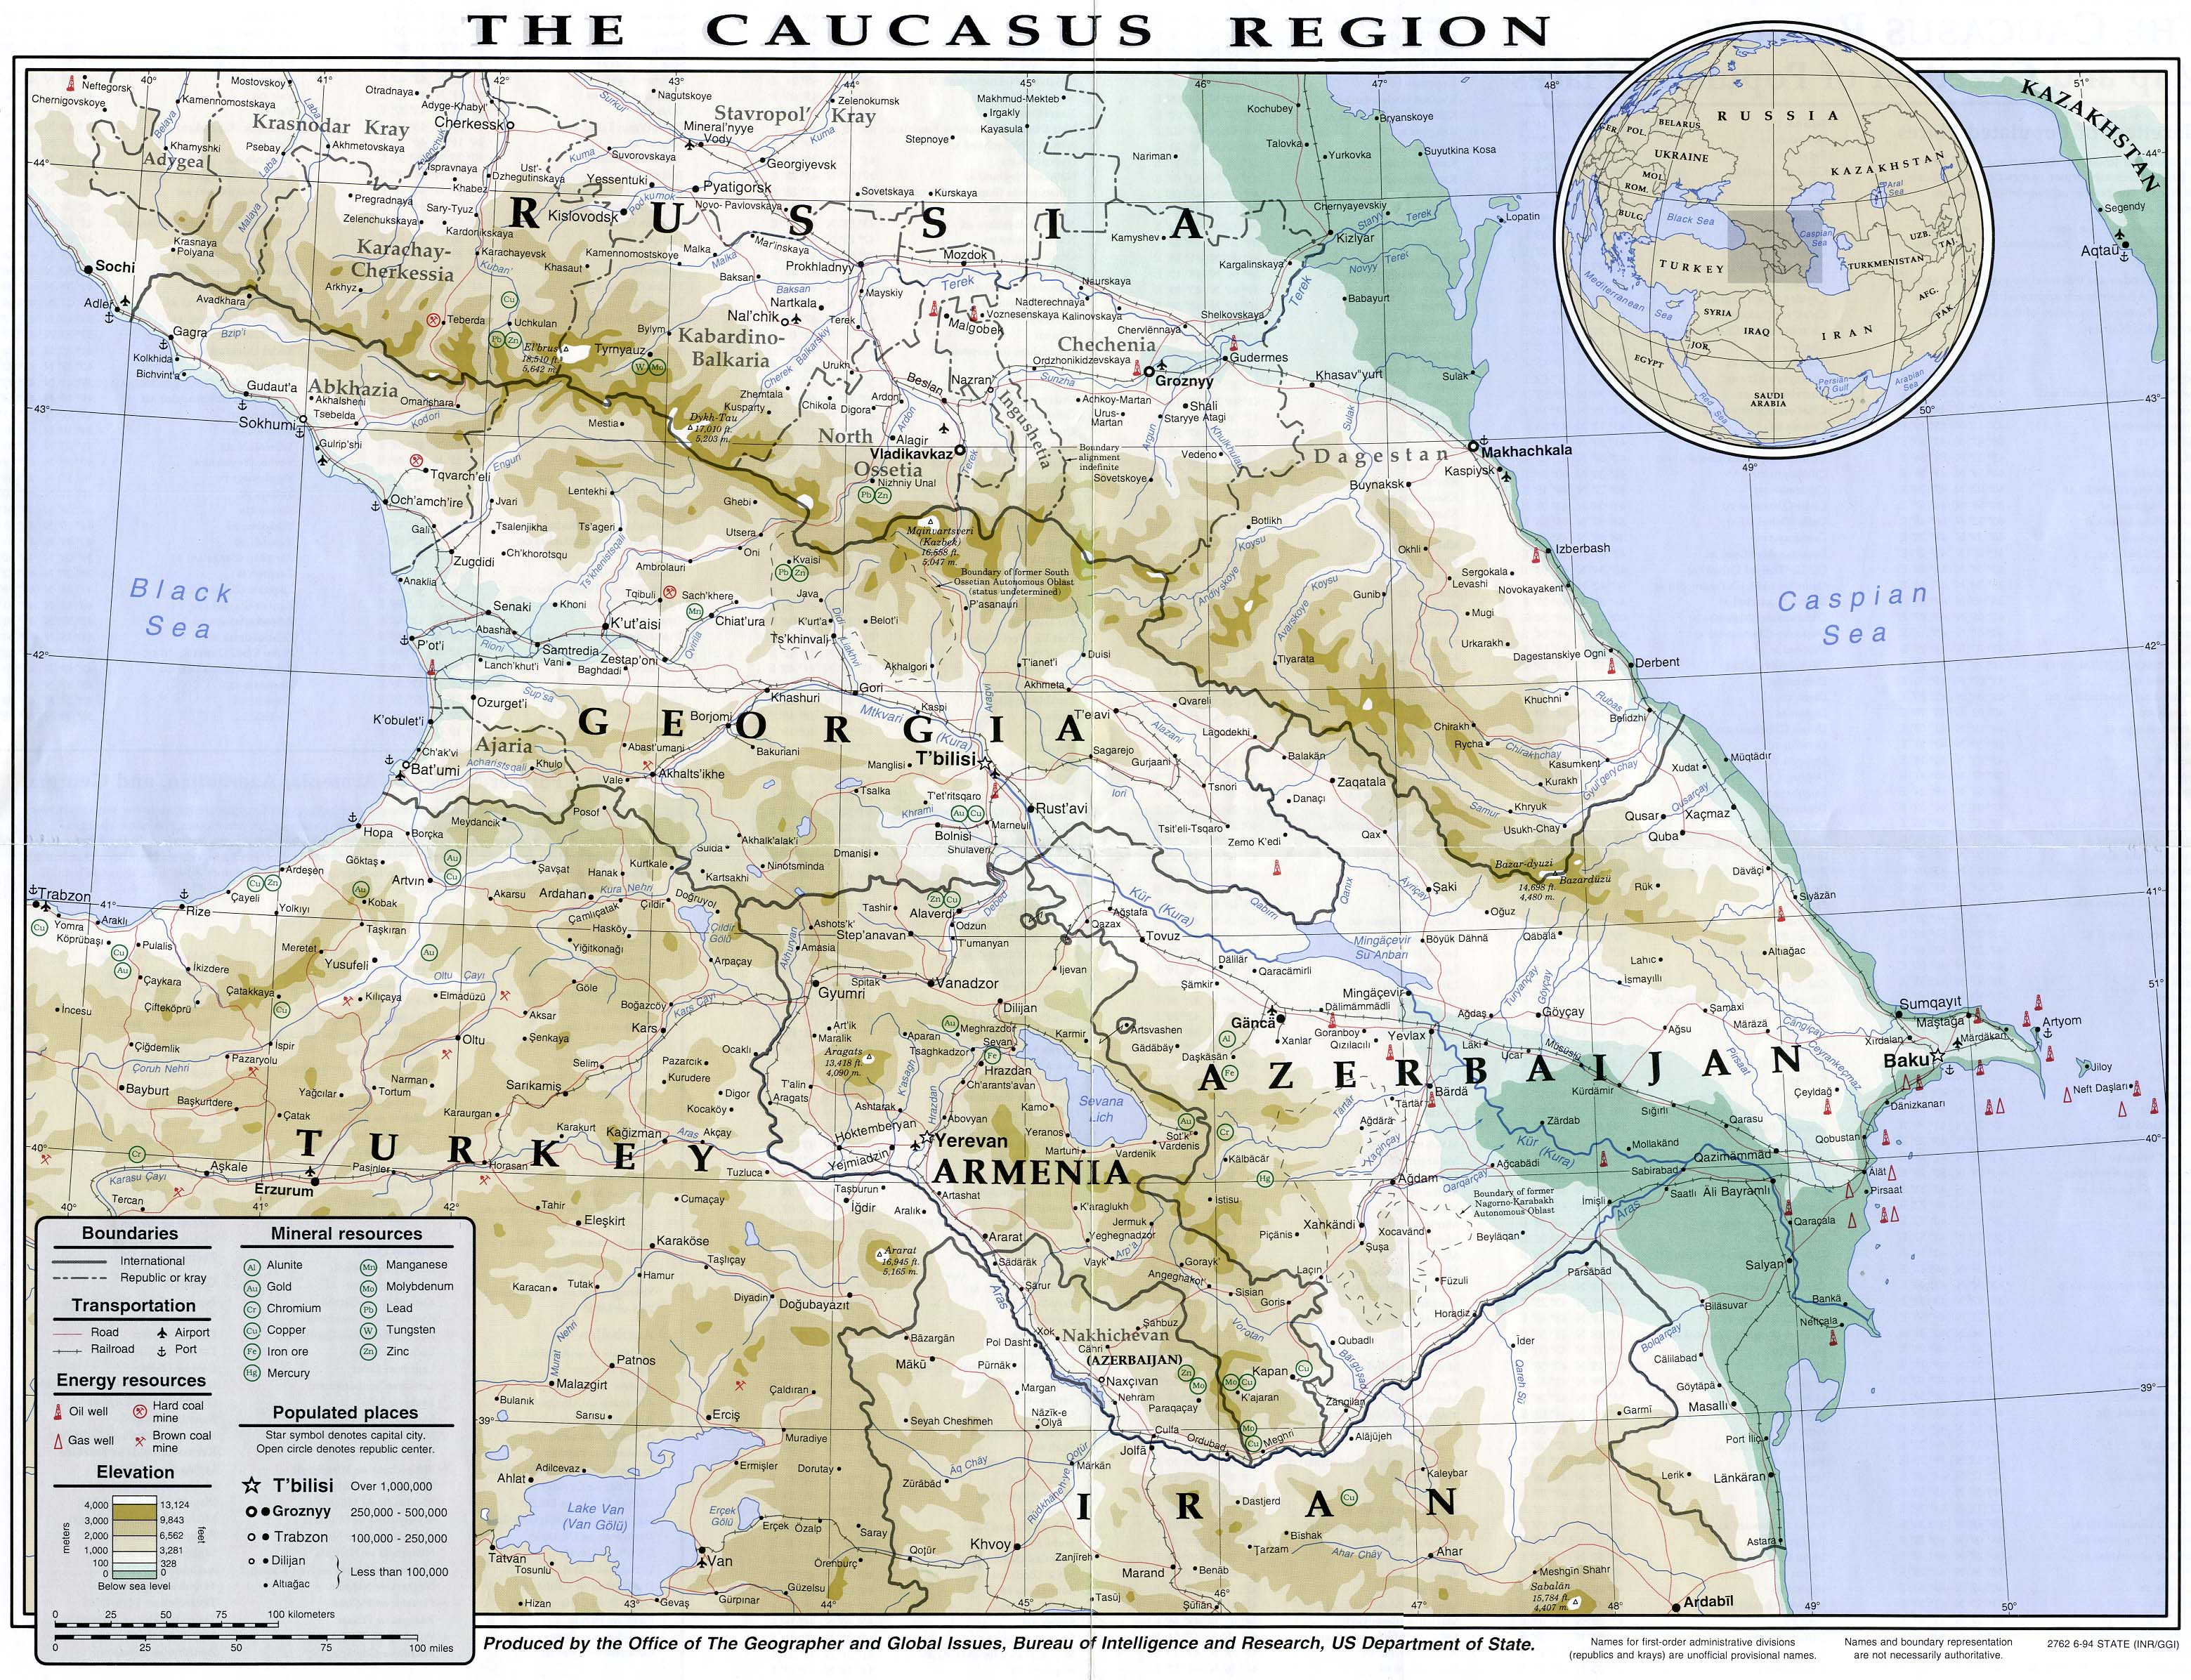 Causes of Violent Conflict in the Caucasus Since the Collapse of Communism